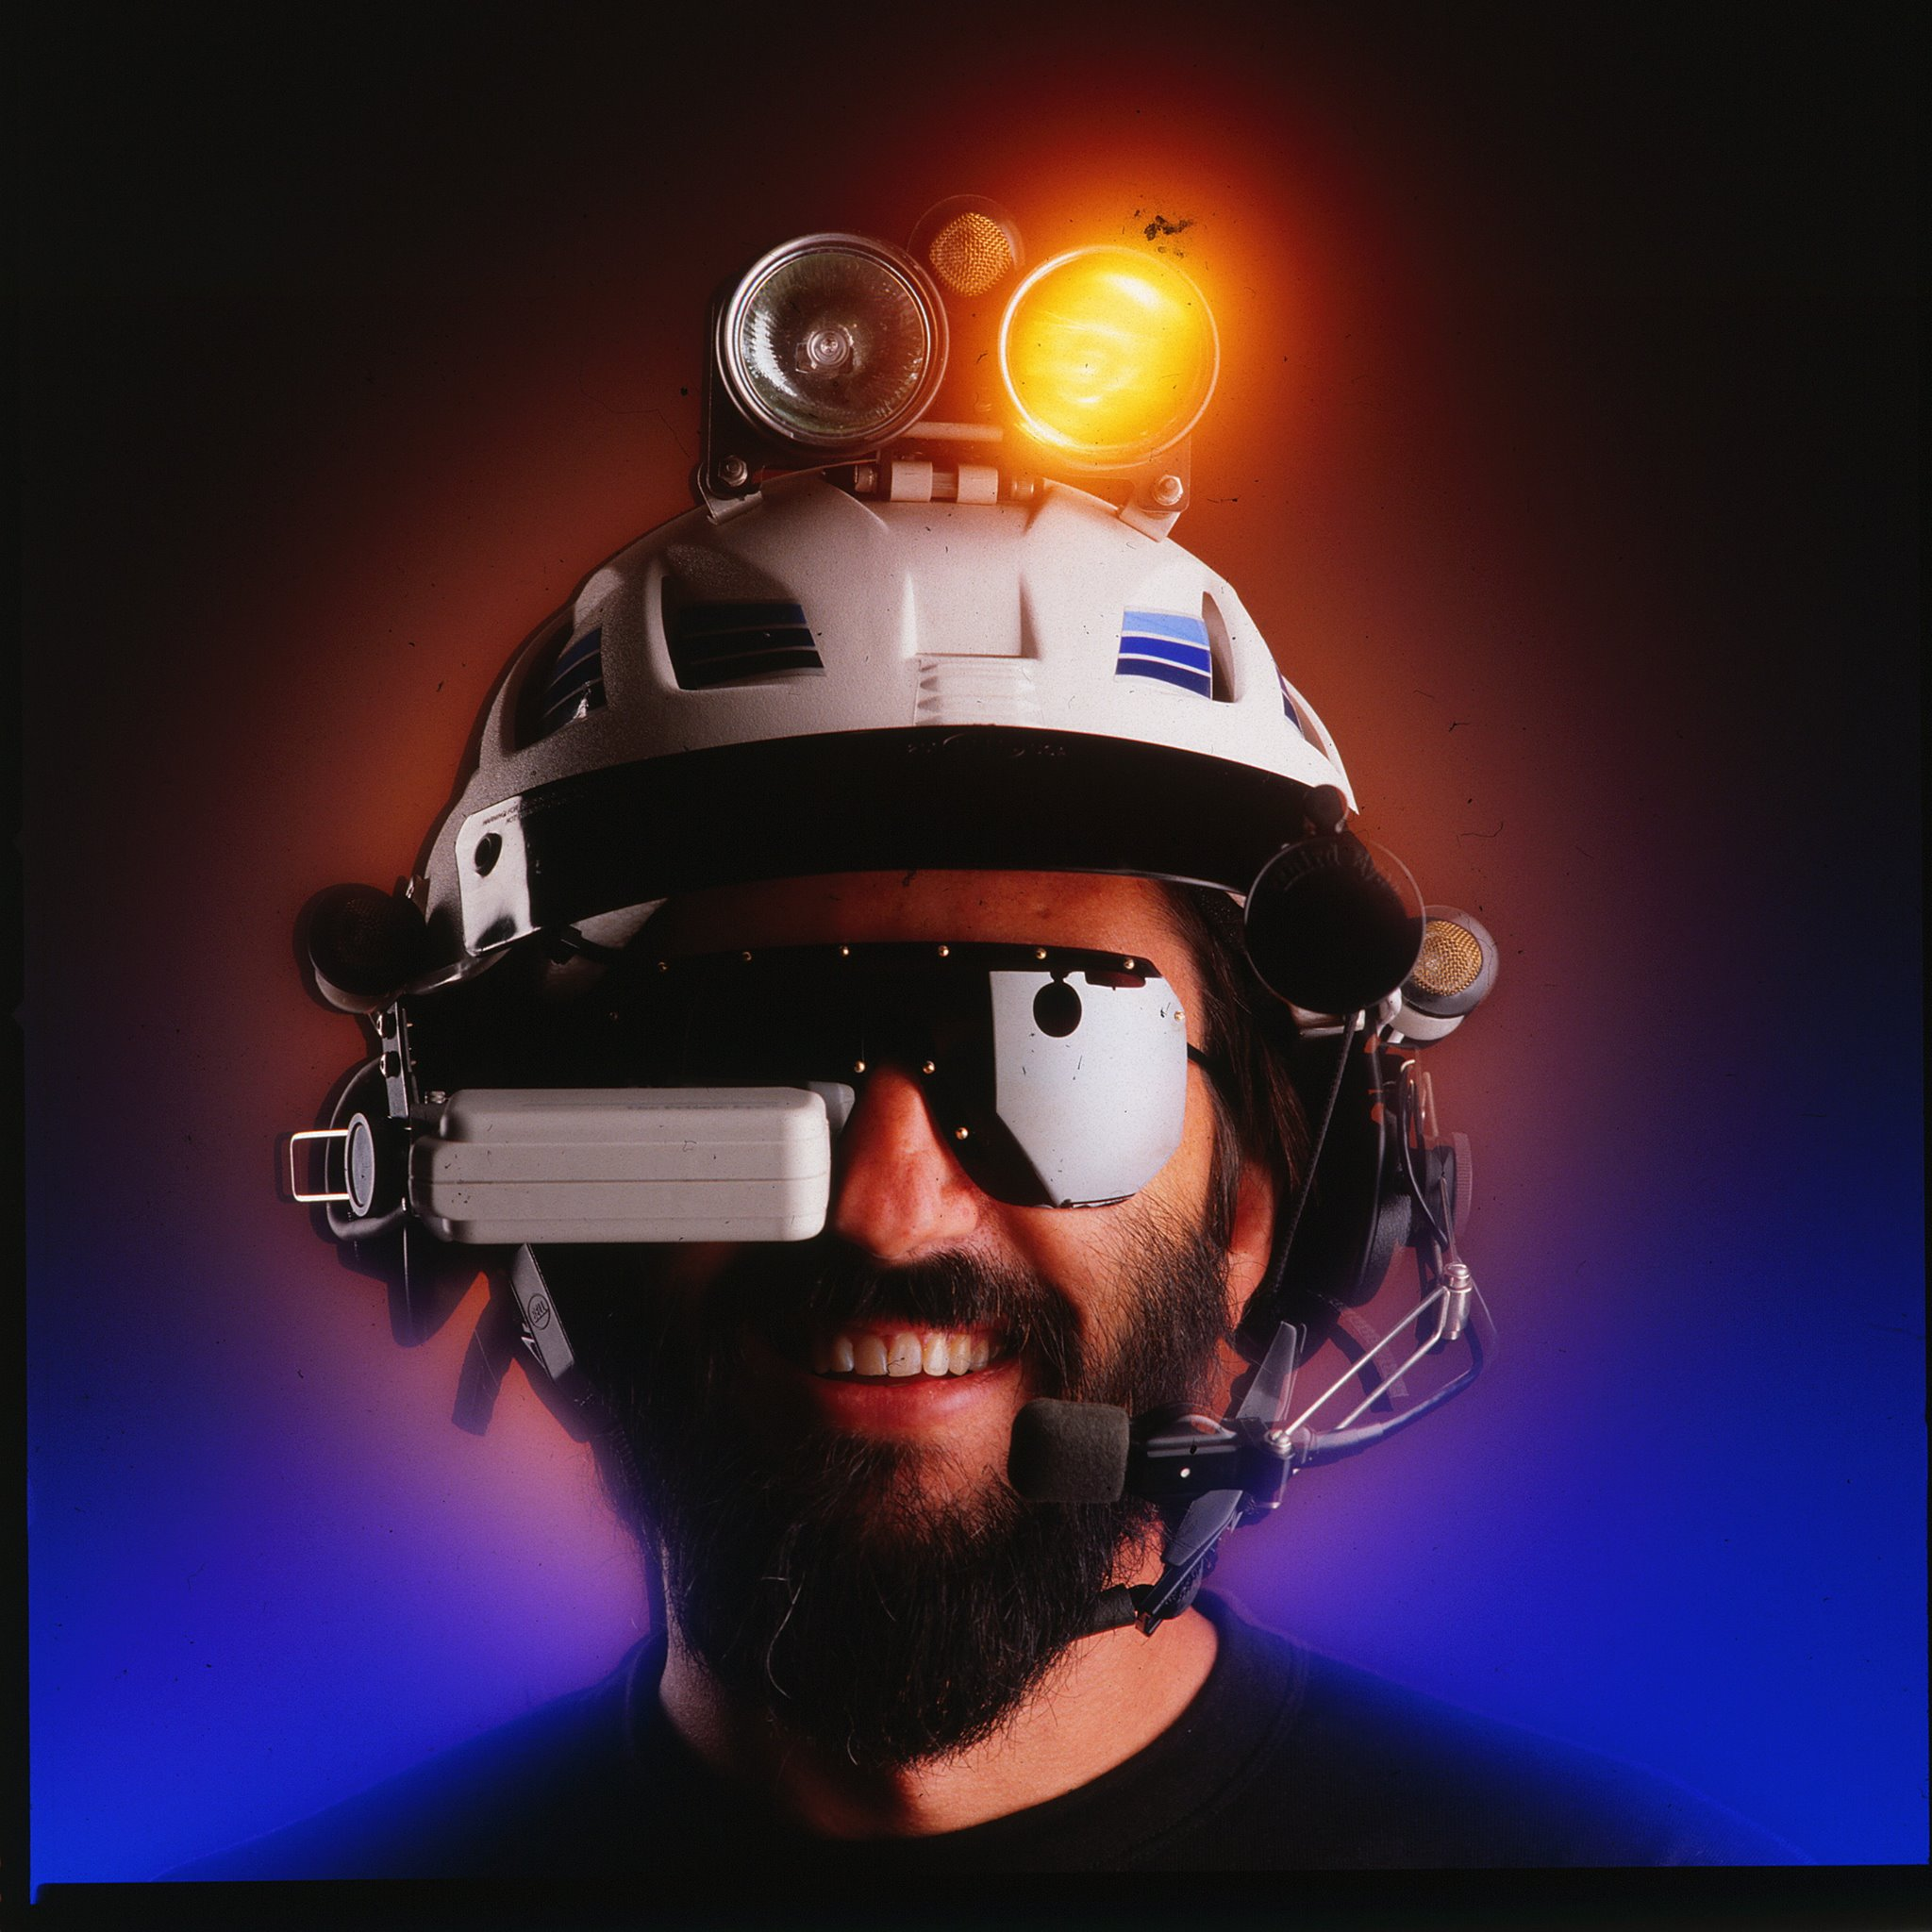 """Steve Roberts and the """"Brain Interface Unit"""" for his nomadic """"BEHEMOTH"""" bike project. The BIU offered a heads-up data display (via The Private Eye), a head-gesture-controlled mouse, radio communications and entertainment audio, spot and flood lights, a rear view mirror, and even a helmet liquid cooling system."""